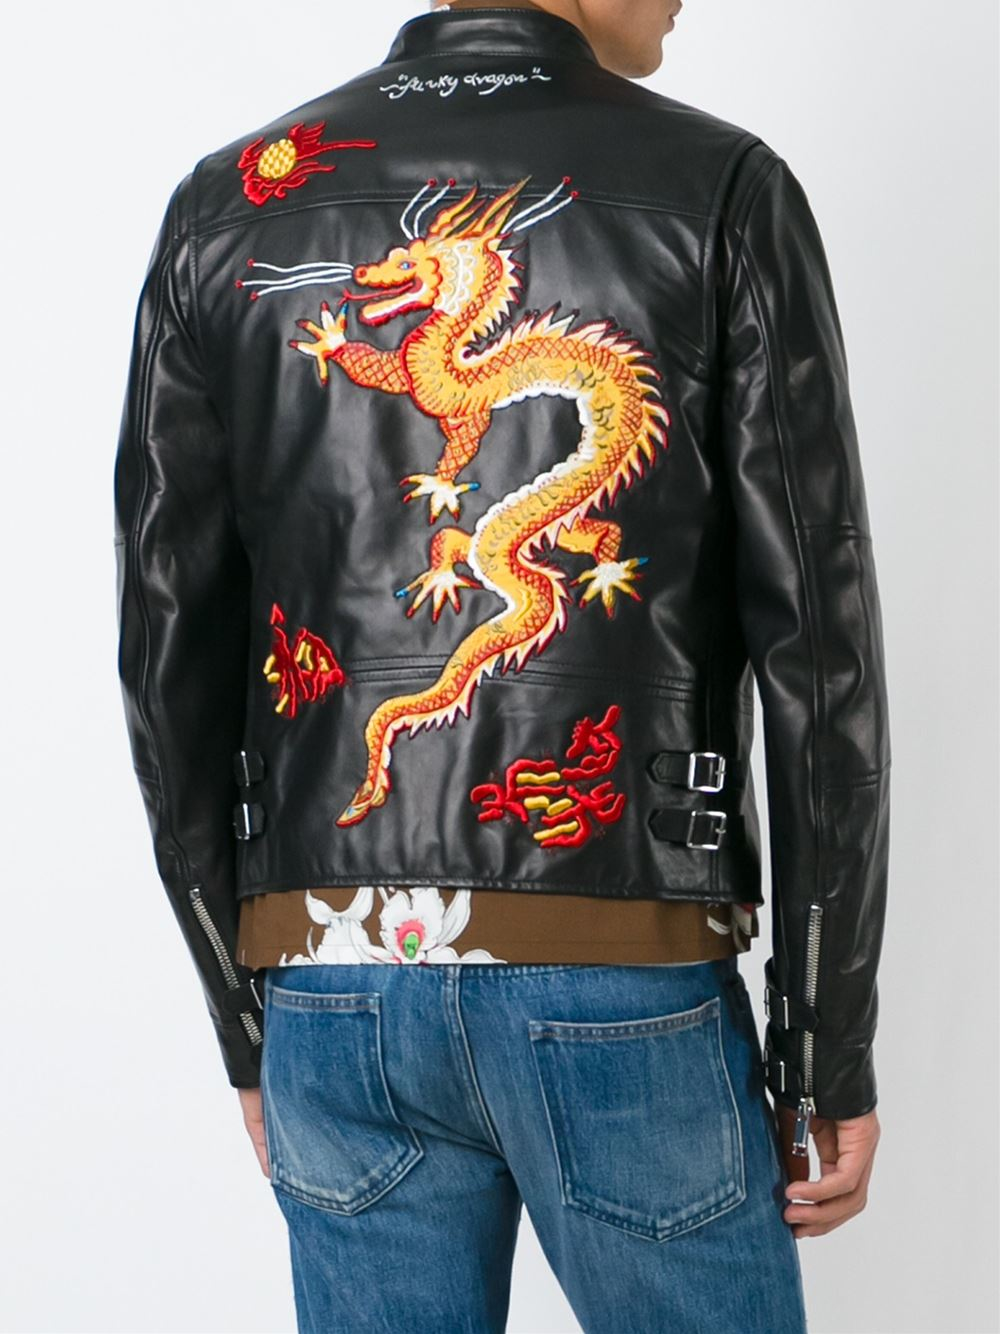 Valentino Dragon Embroidered Jacket In Black For Men Lyst